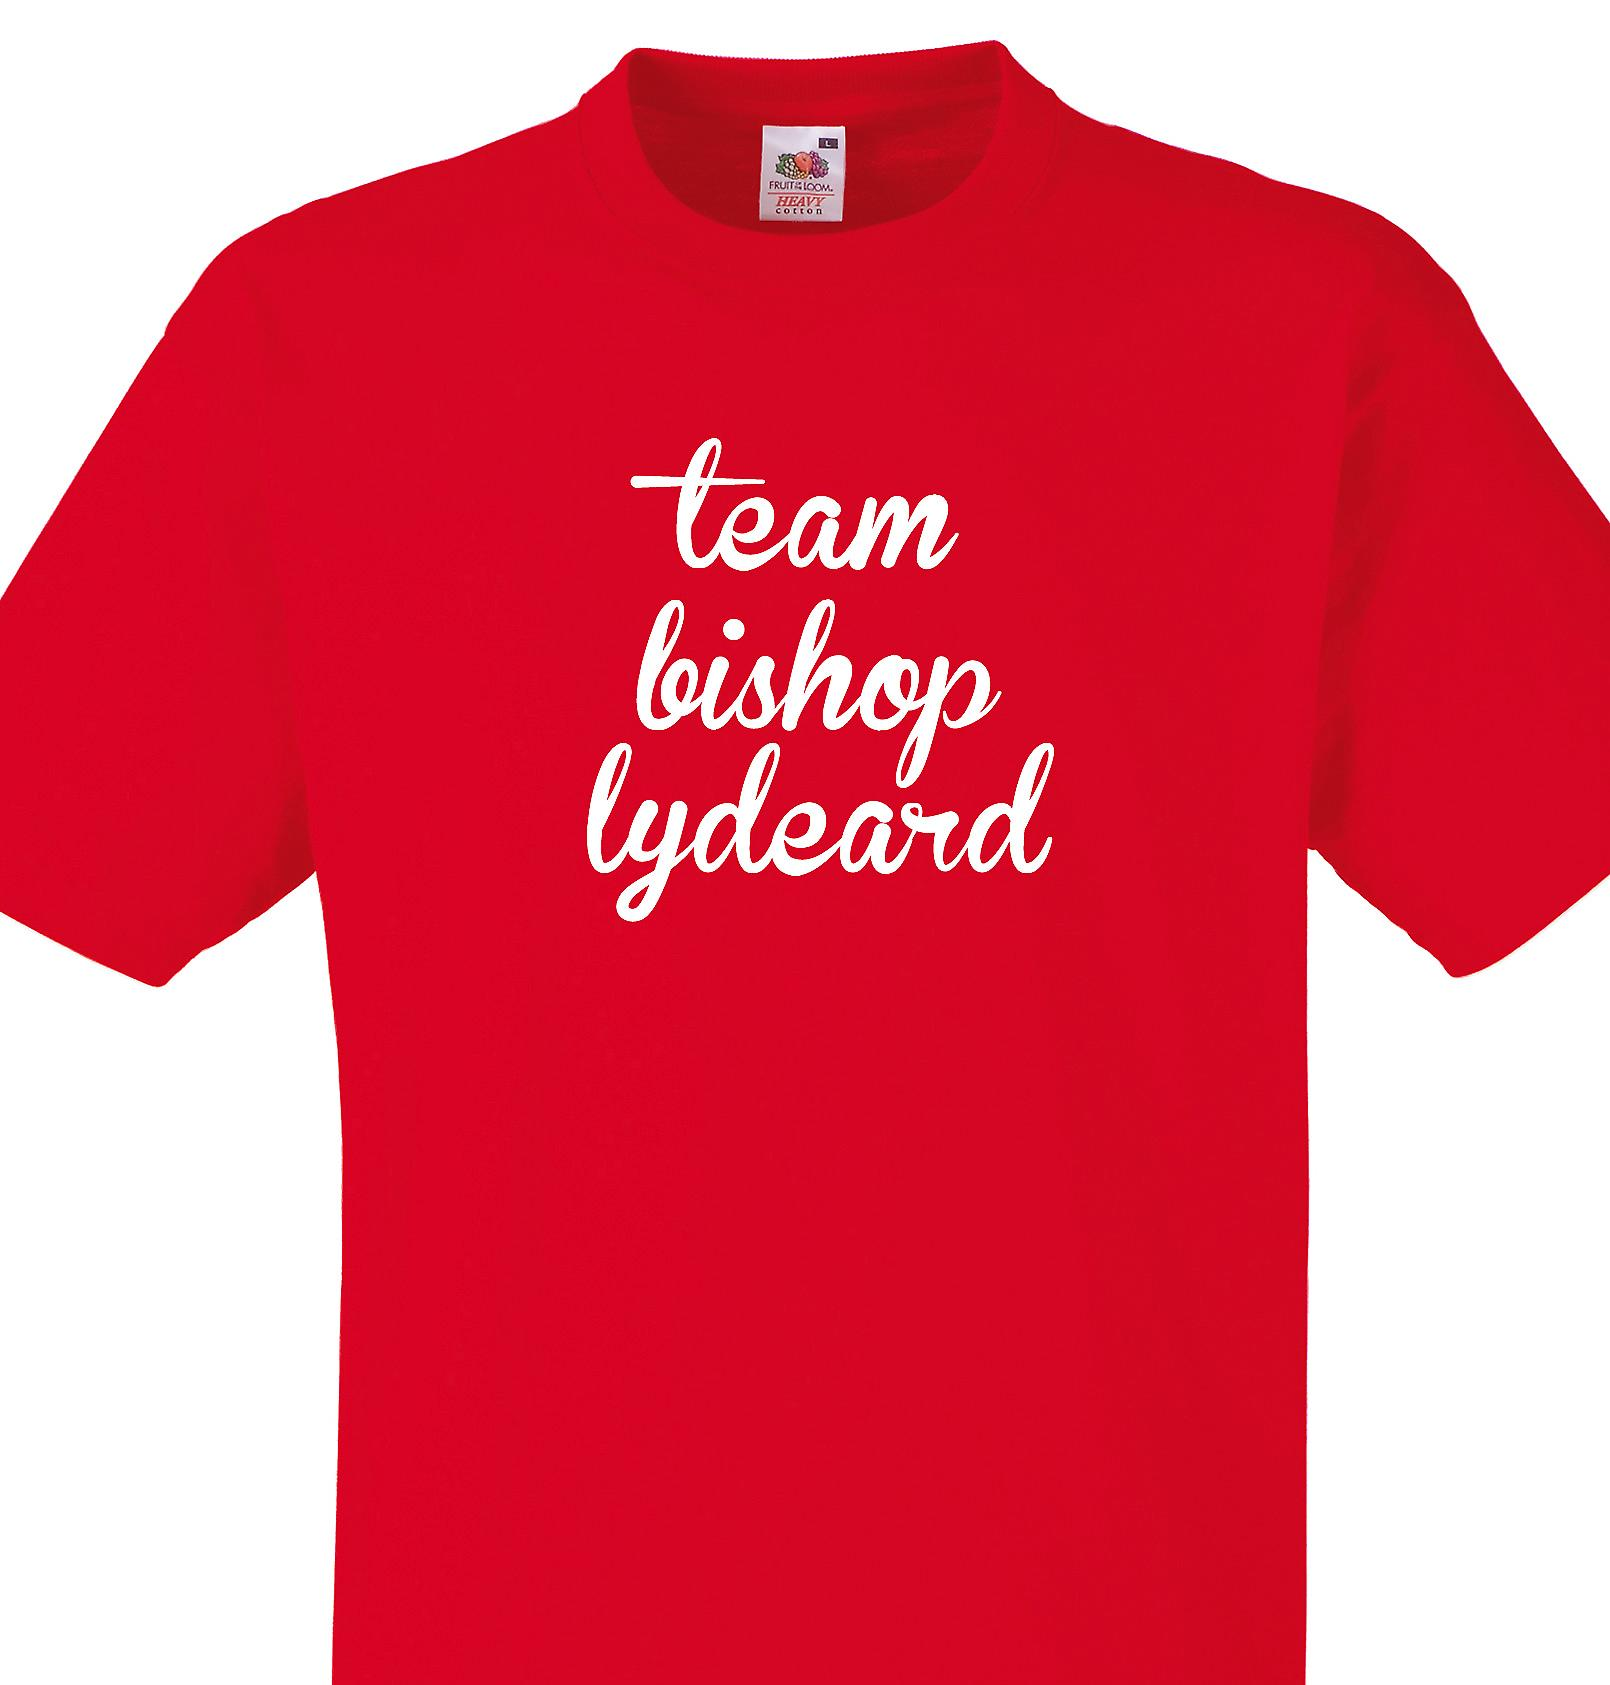 Team Bishop lydeard Red T shirt